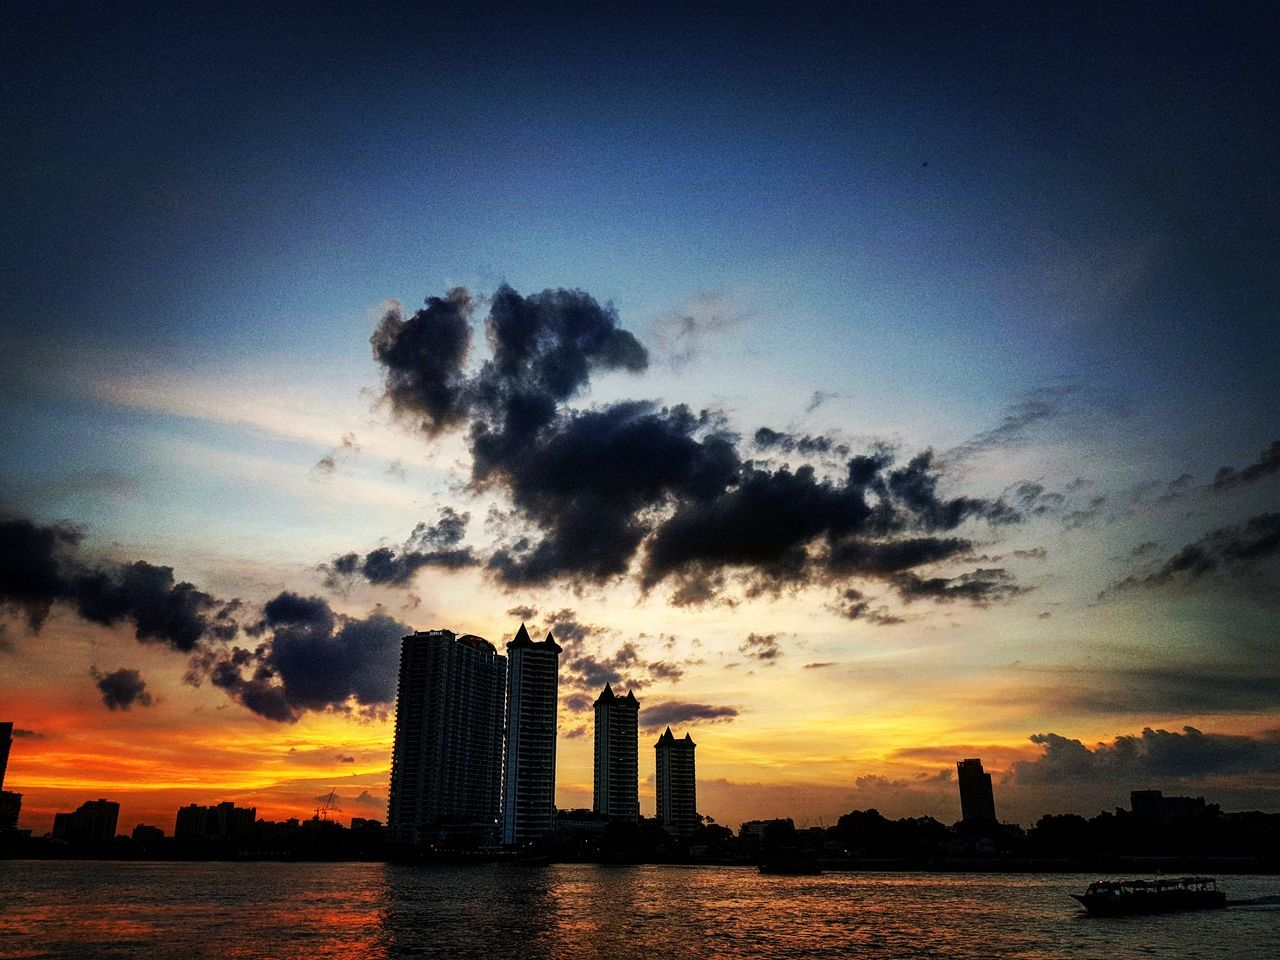 sunset, sky, architecture, built structure, building exterior, cloud - sky, silhouette, skyscraper, urban skyline, water, sea, outdoors, cityscape, scenics, no people, nature, city, beauty in nature, modern, day